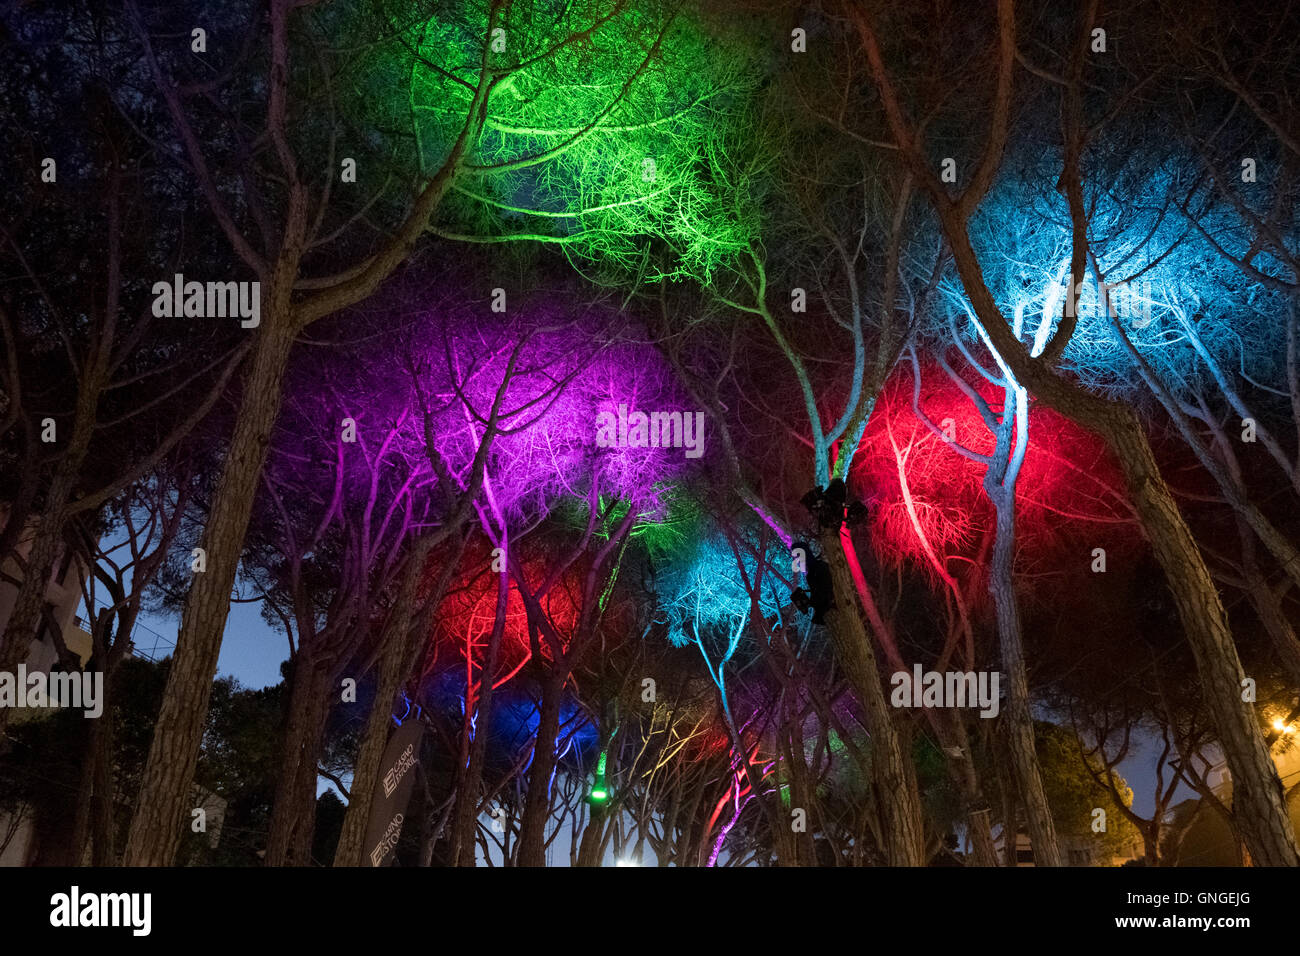 Lights in the trees decorate the canopy for the Estoril Craft Fair & Lights in the trees decorate the canopy for the Estoril Craft Fair ...